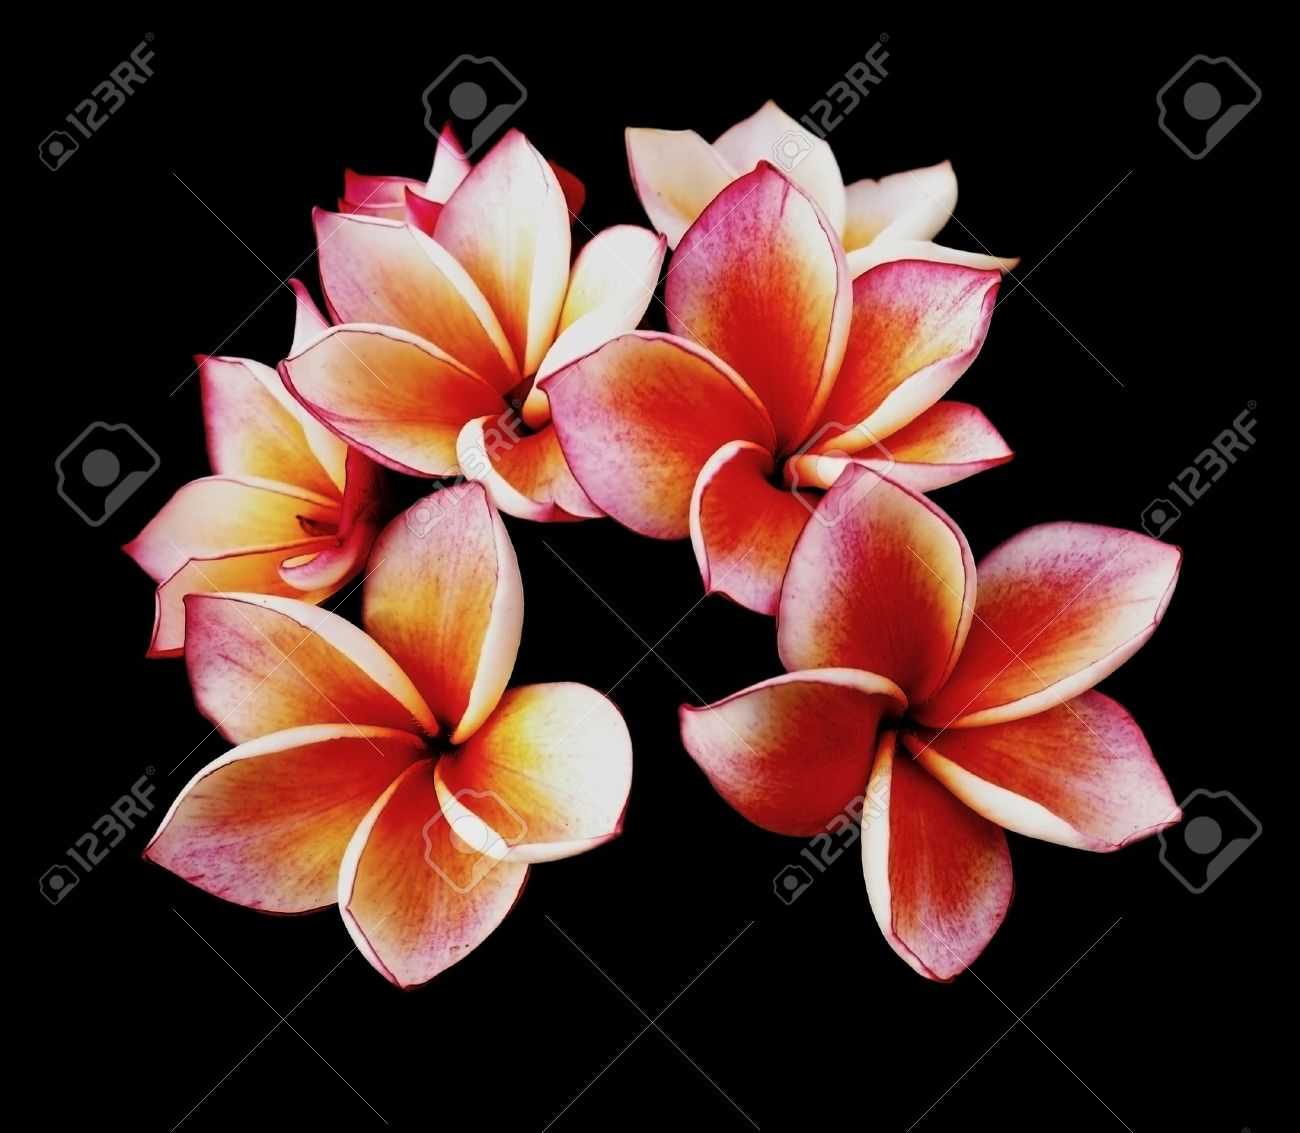 Glorious frangipani or plumeria flowers, with black background Stock Photo - 16133801